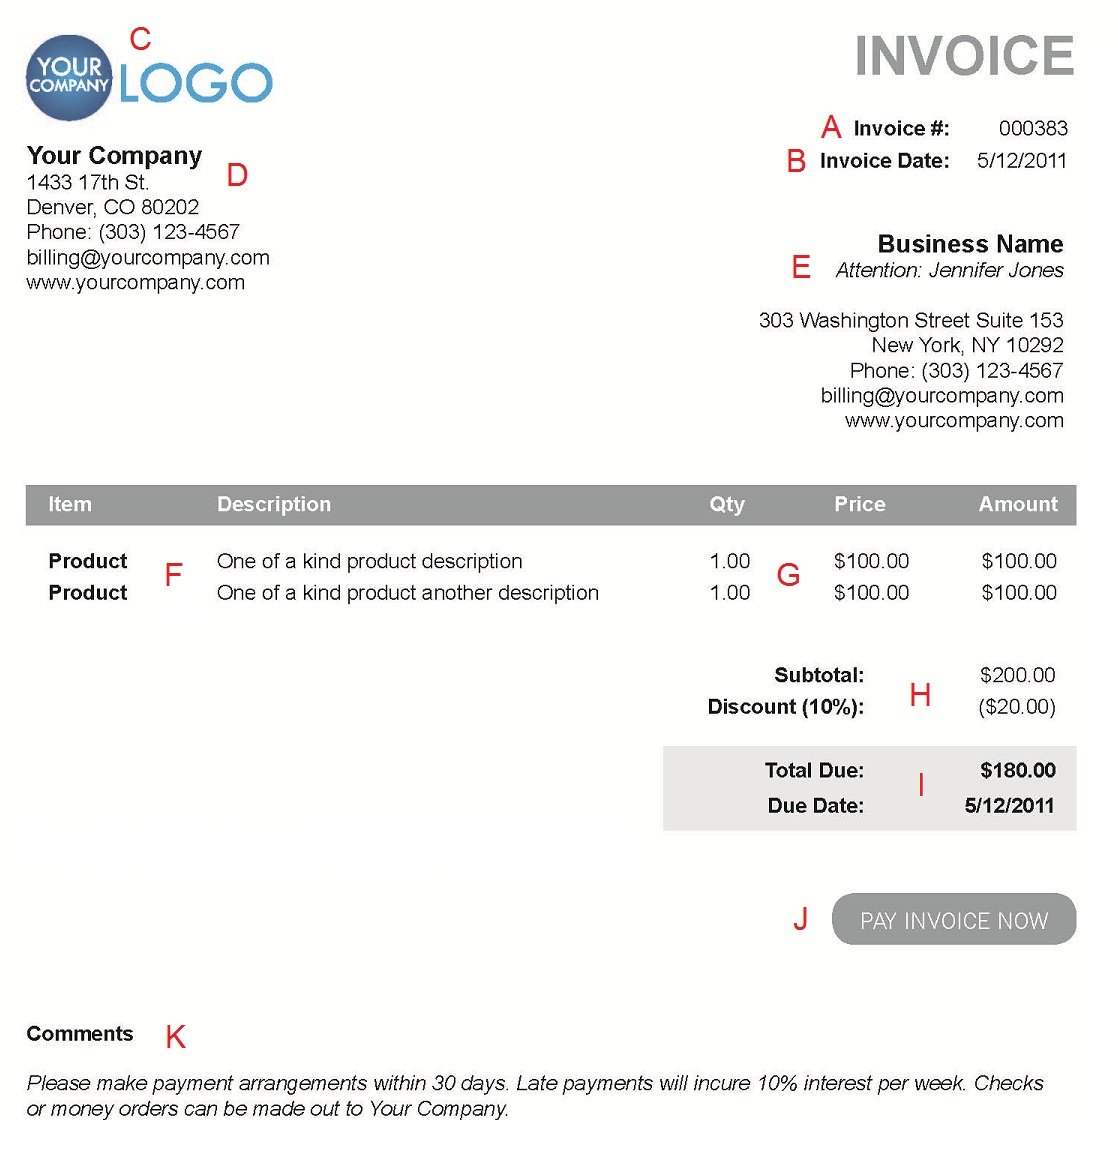 Gpwaus  Fascinating The  Different Sections Of An Electronic Payment Invoice With Lovely A  With Extraordinary Invoice By Vin Also Invoice Paper Perforated In Addition Invoice On New Cars And Weekly Invoice Template As Well As Purchase Invoices Additionally Pi Invoice From Paysimplecom With Gpwaus  Lovely The  Different Sections Of An Electronic Payment Invoice With Extraordinary A  And Fascinating Invoice By Vin Also Invoice Paper Perforated In Addition Invoice On New Cars From Paysimplecom